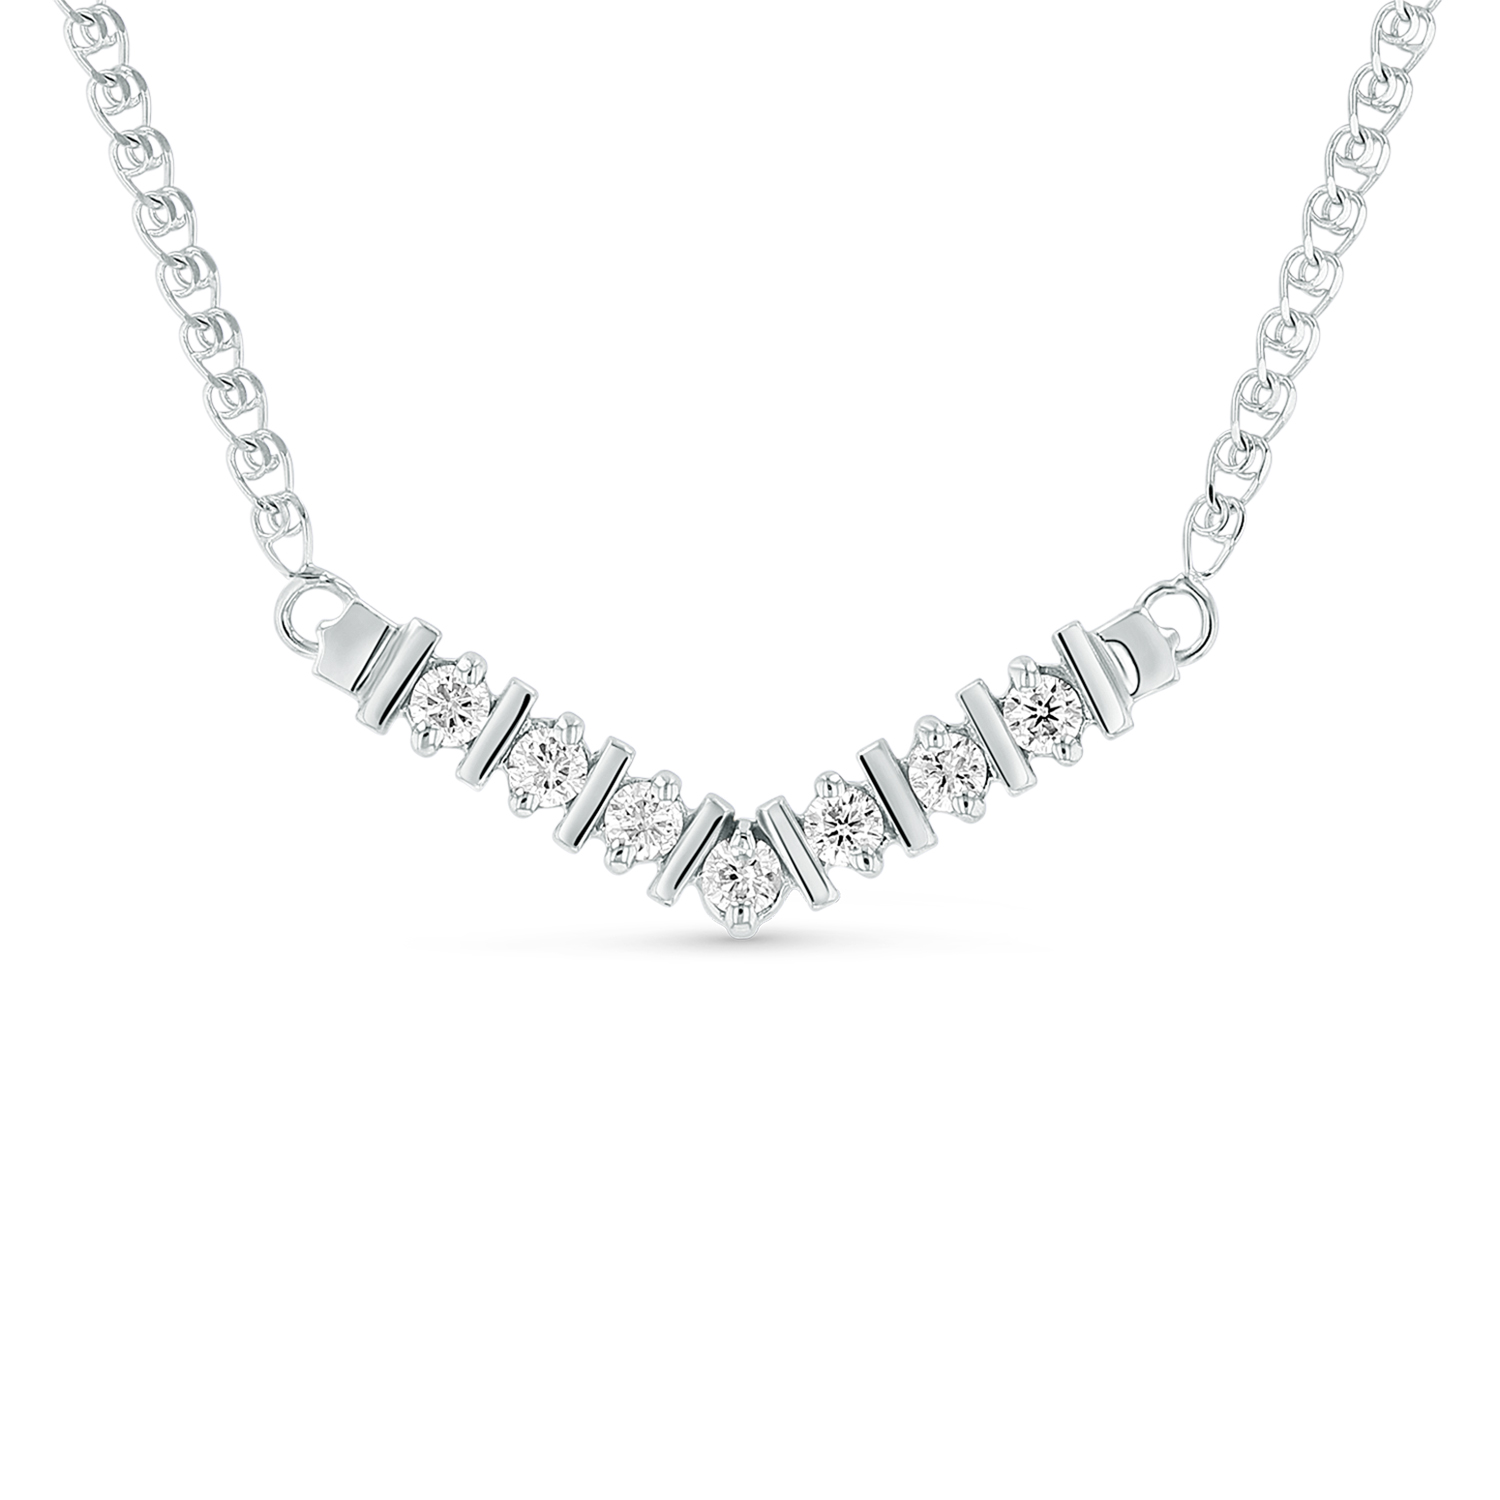 View 1/4ctw Diamond Necklace in 14k White Gold